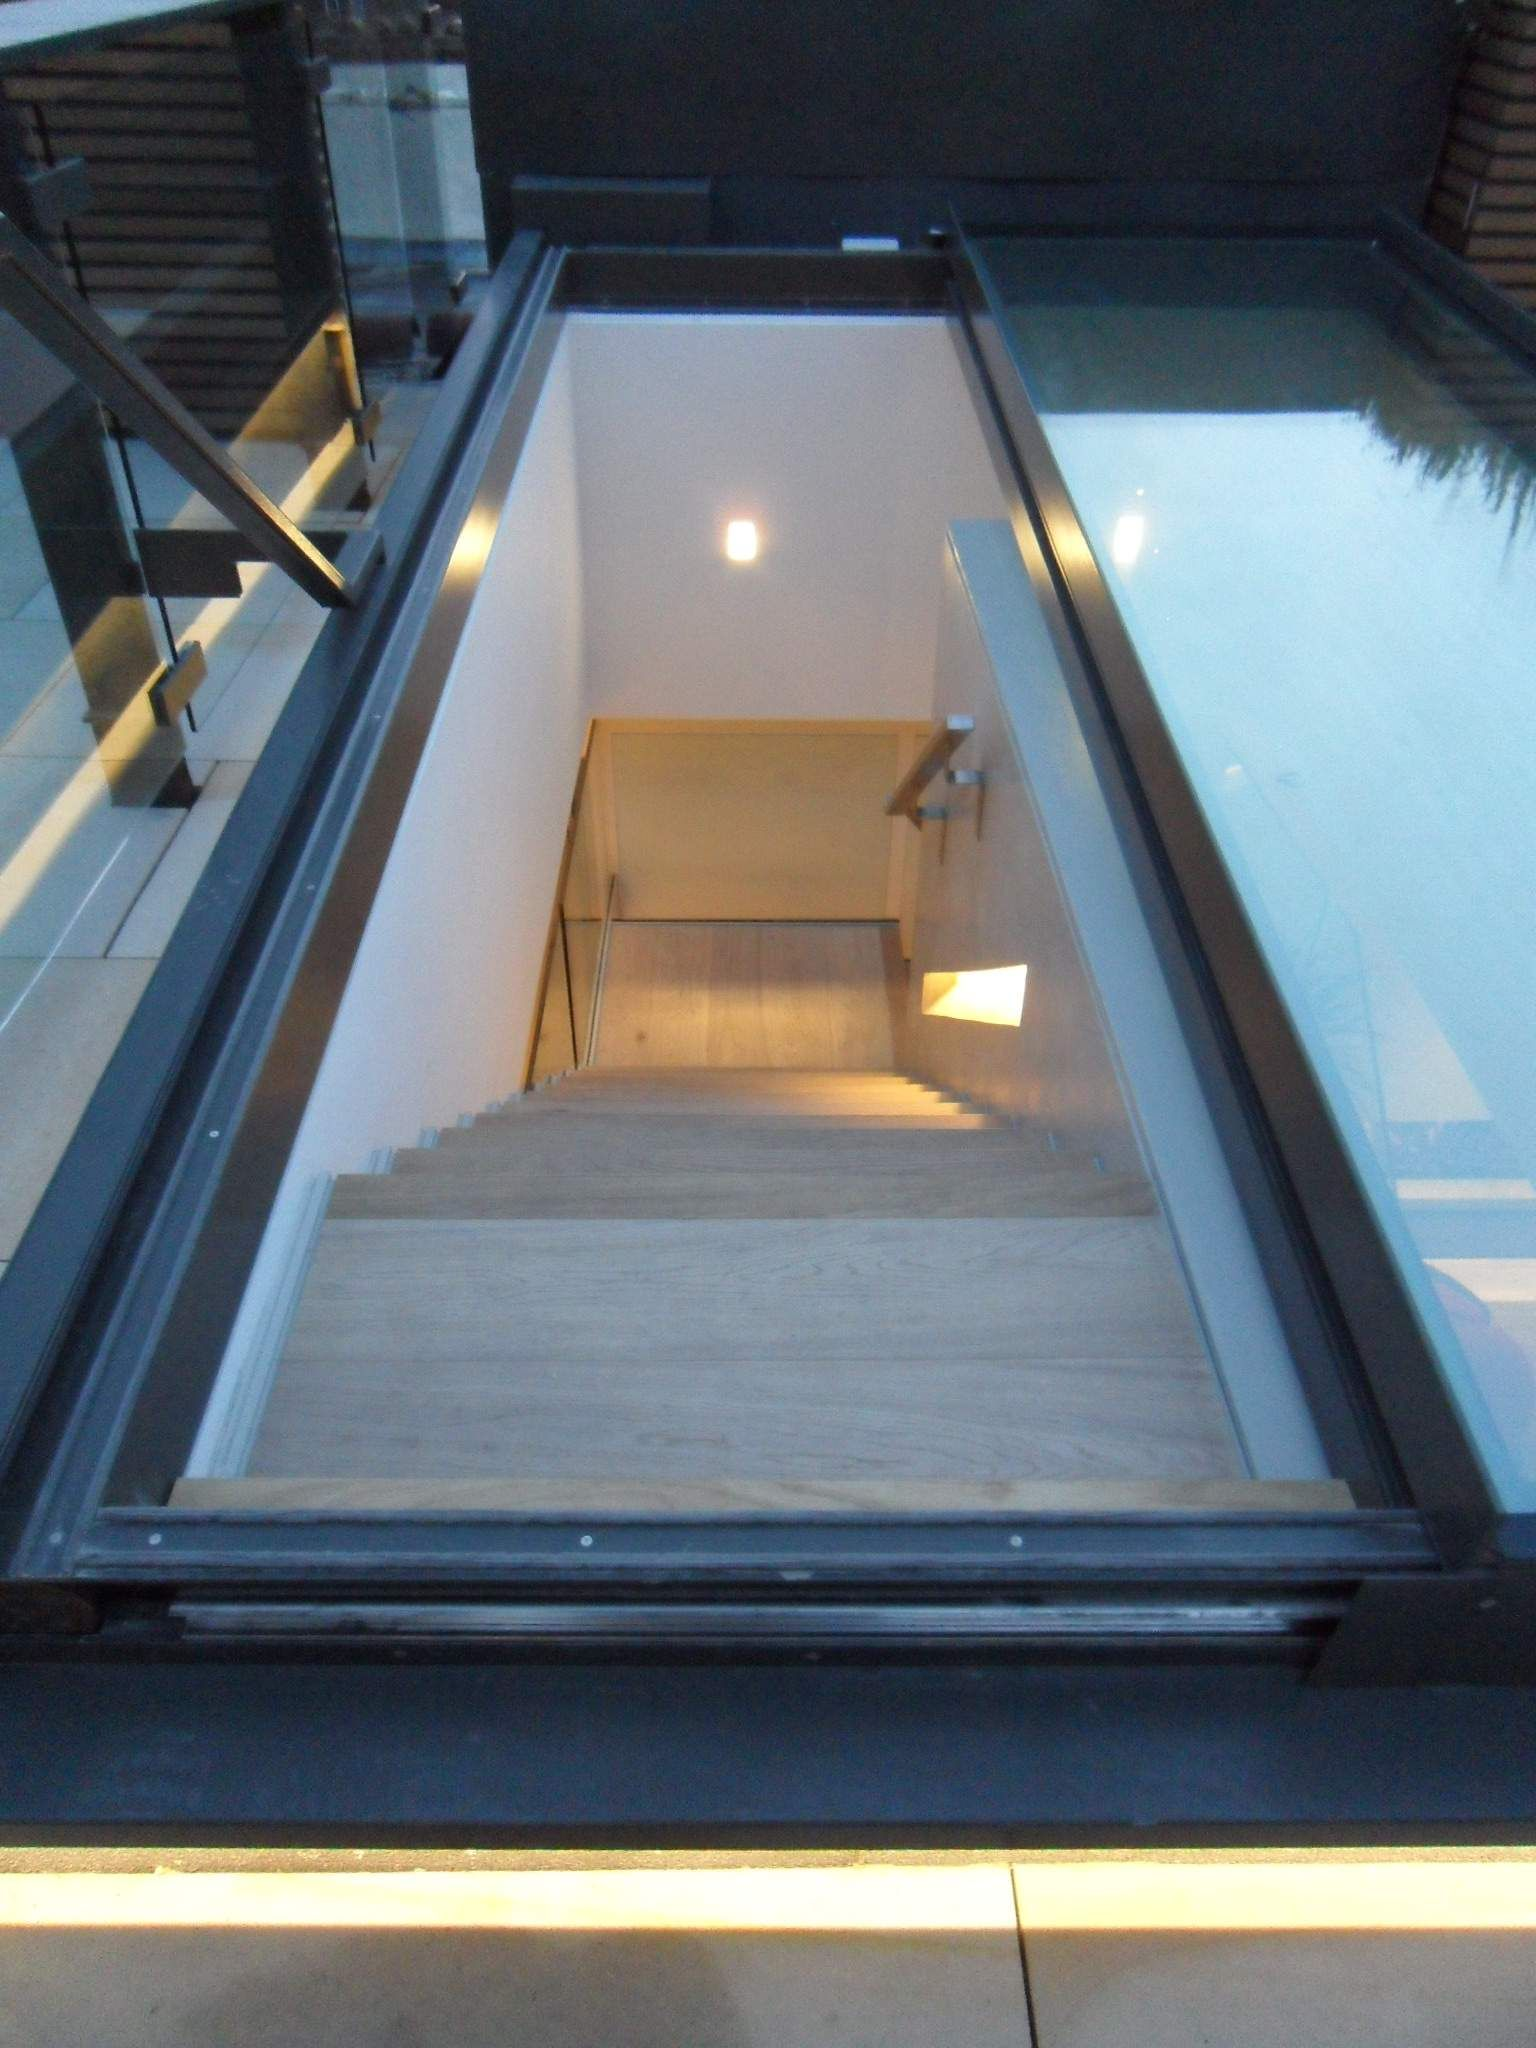 Staka Dachausstieg Roof Access Via Skylight Height Limitation Details